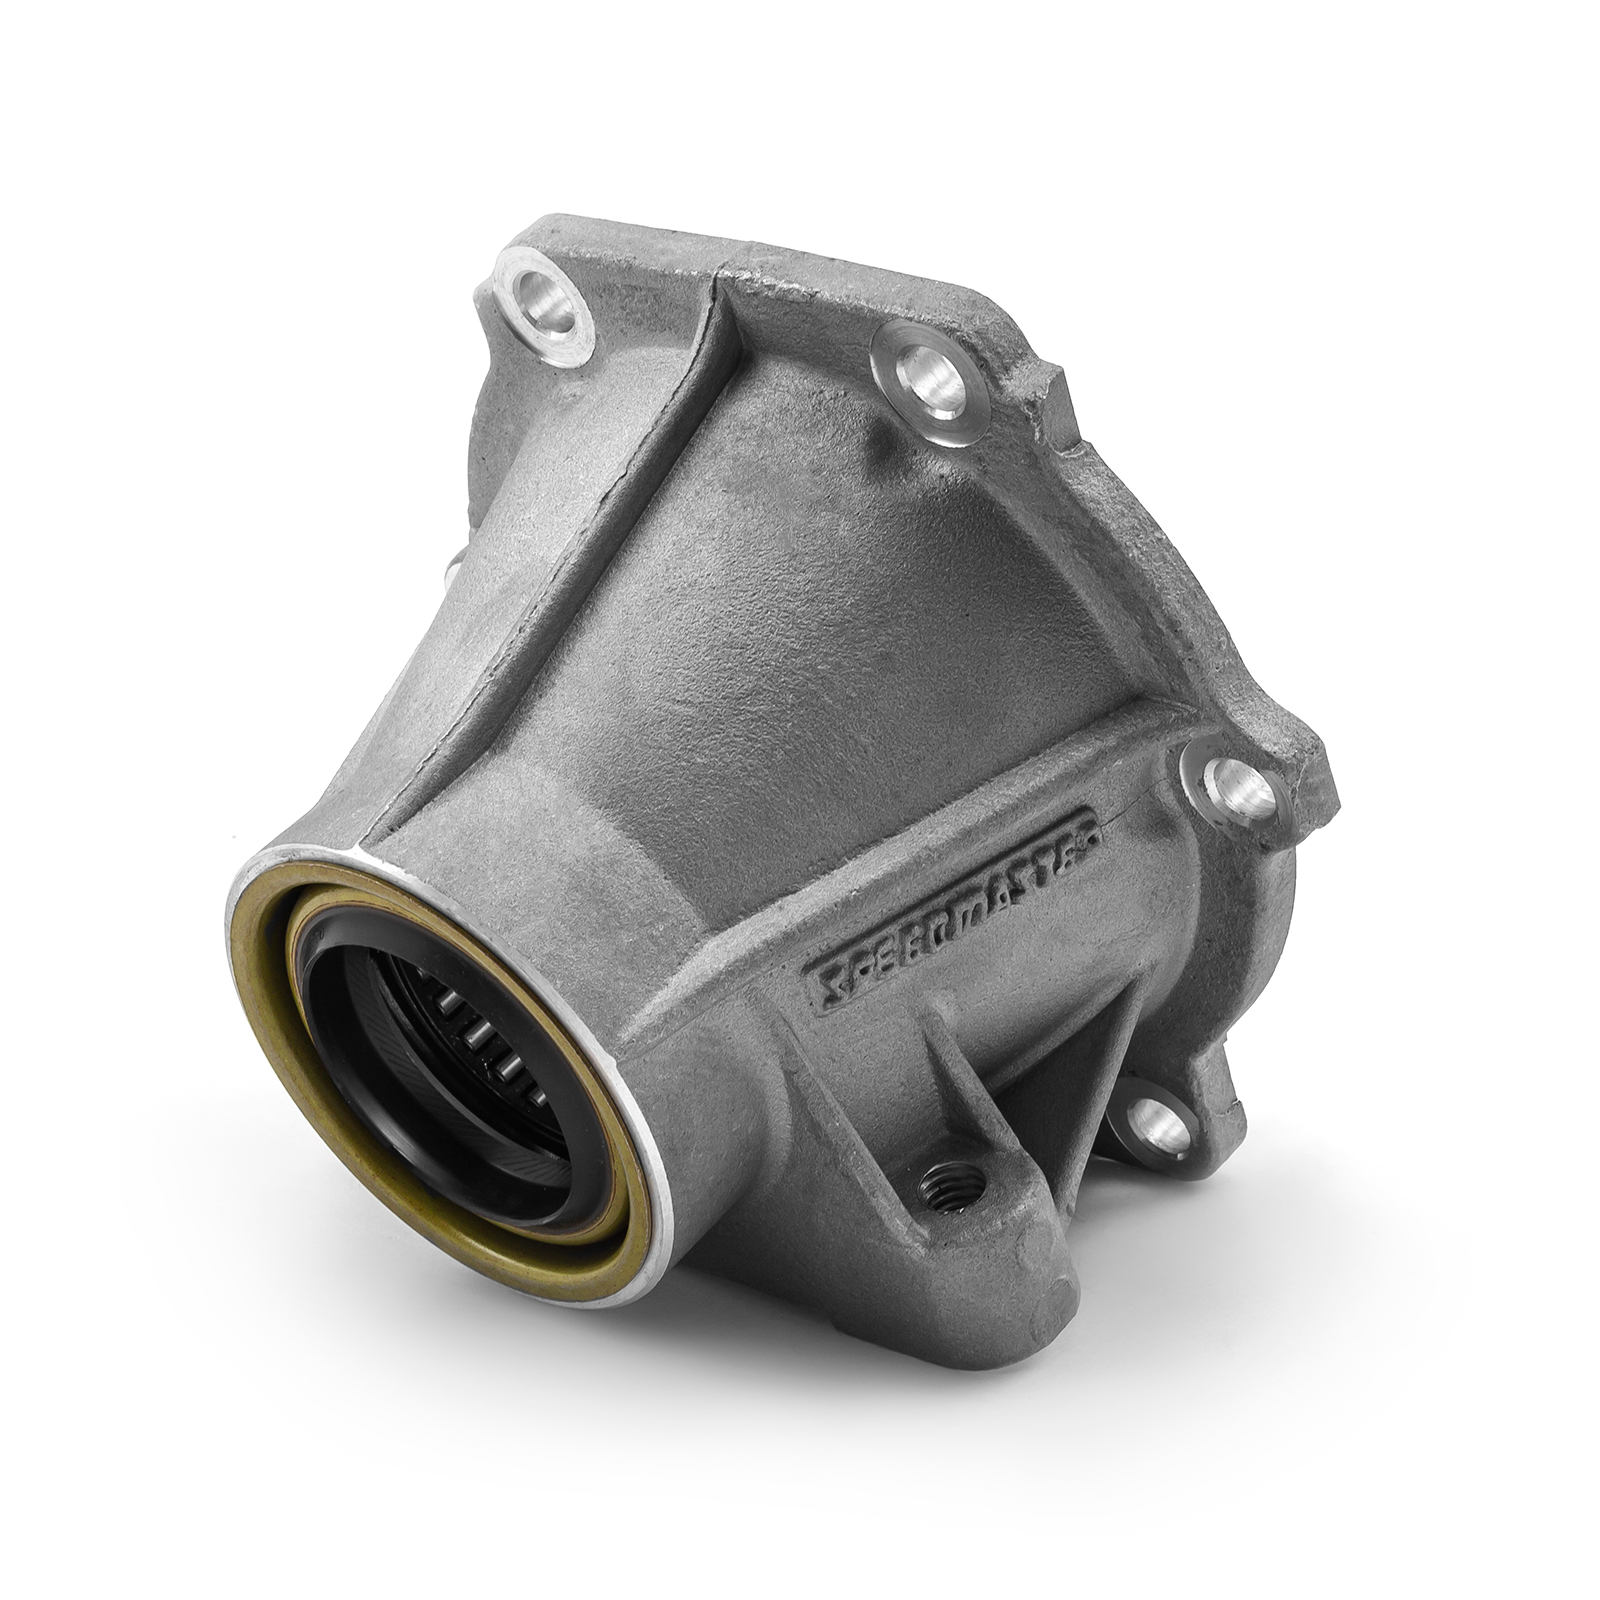 GM Turbo 400 TH400 Aluminum Tailhousing with Roller Bearing